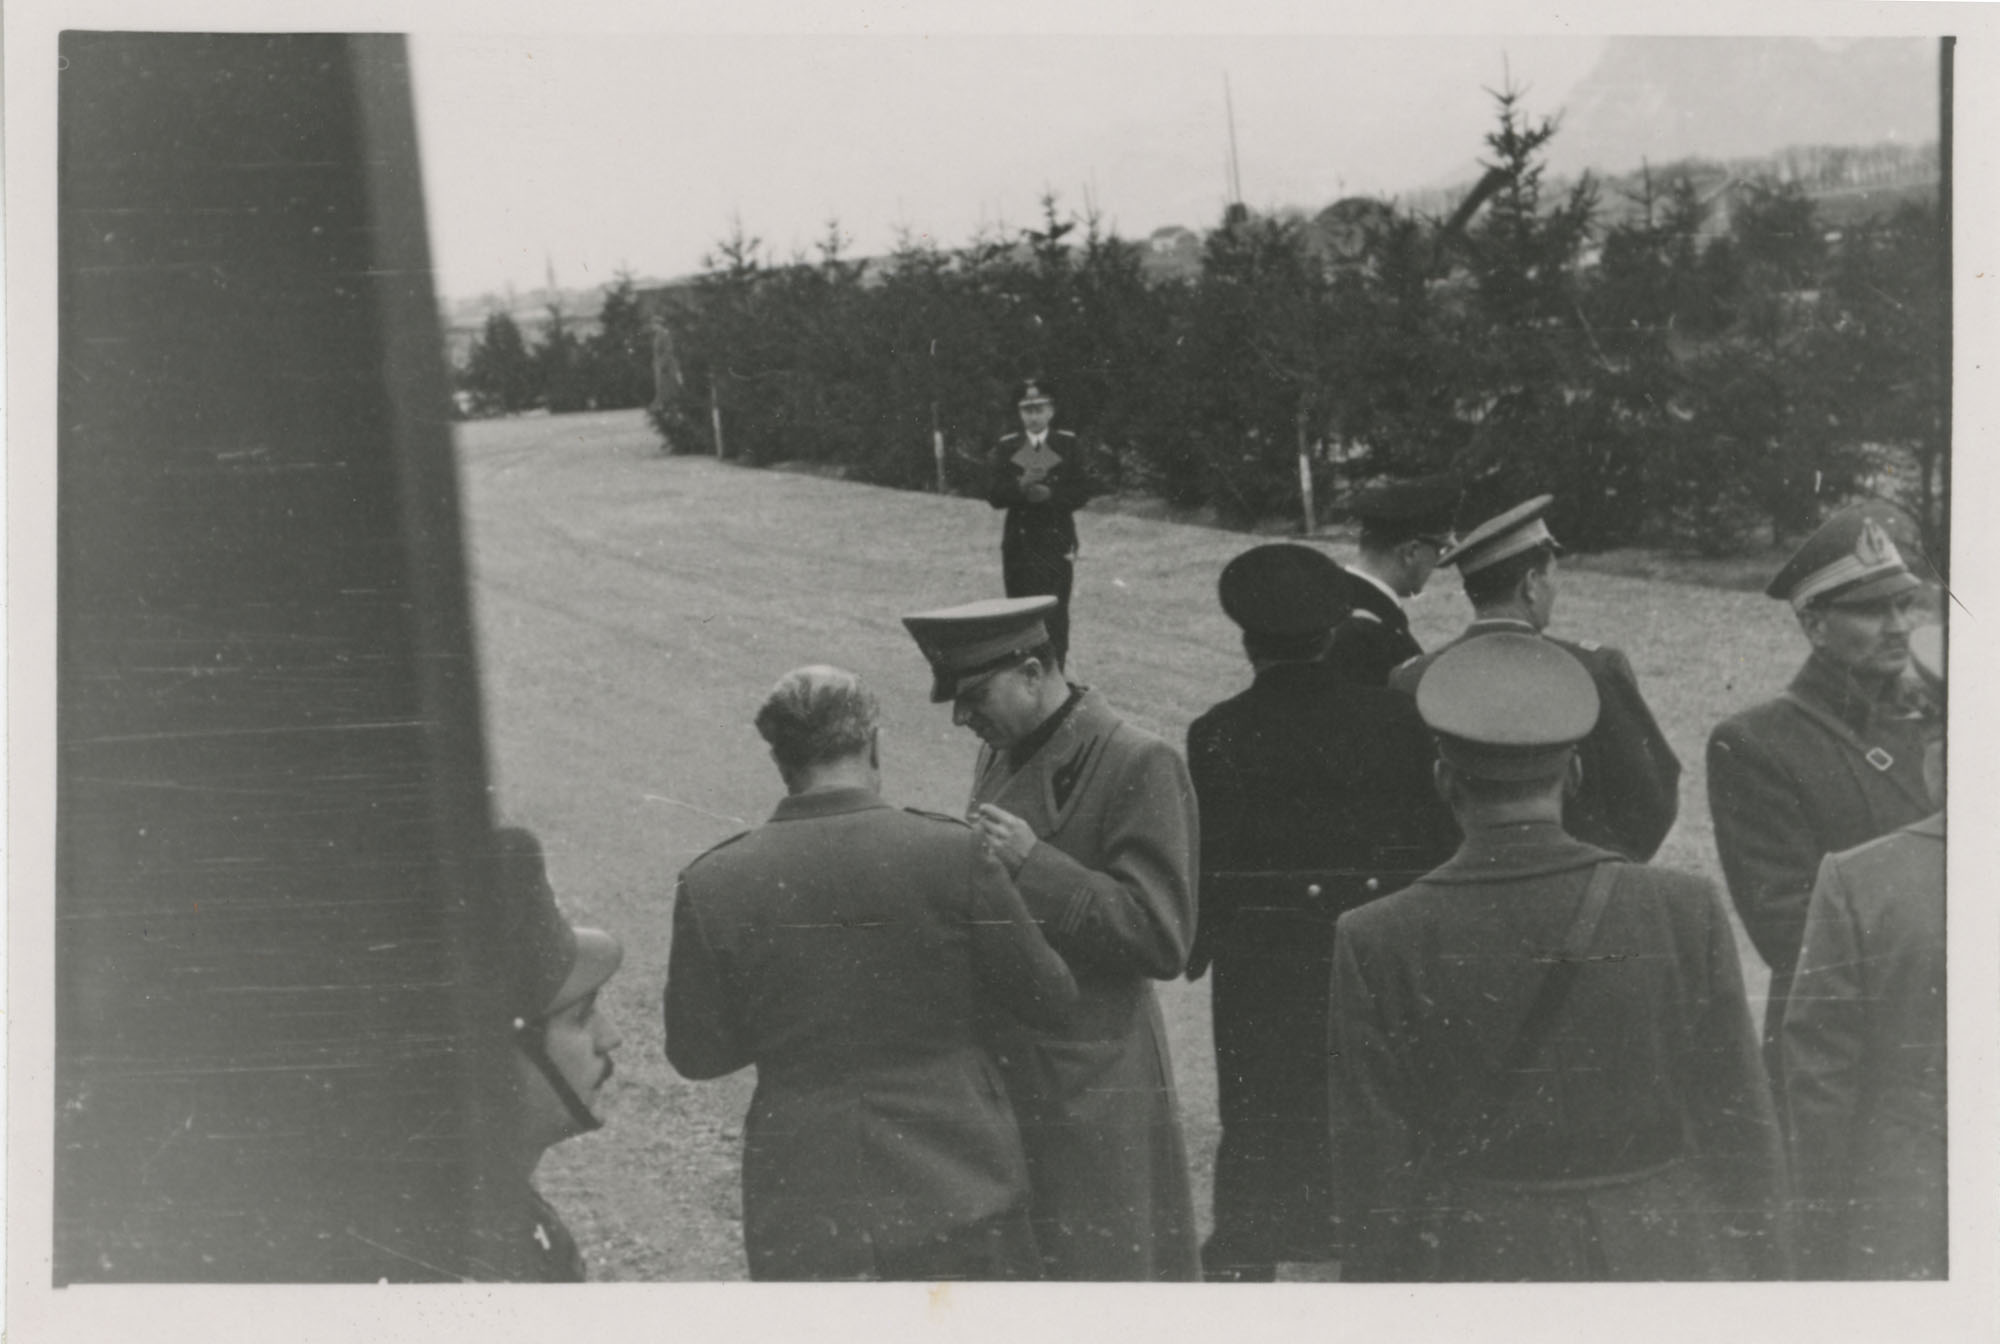 Mario Pansa greeting military personnel, Photograph 12